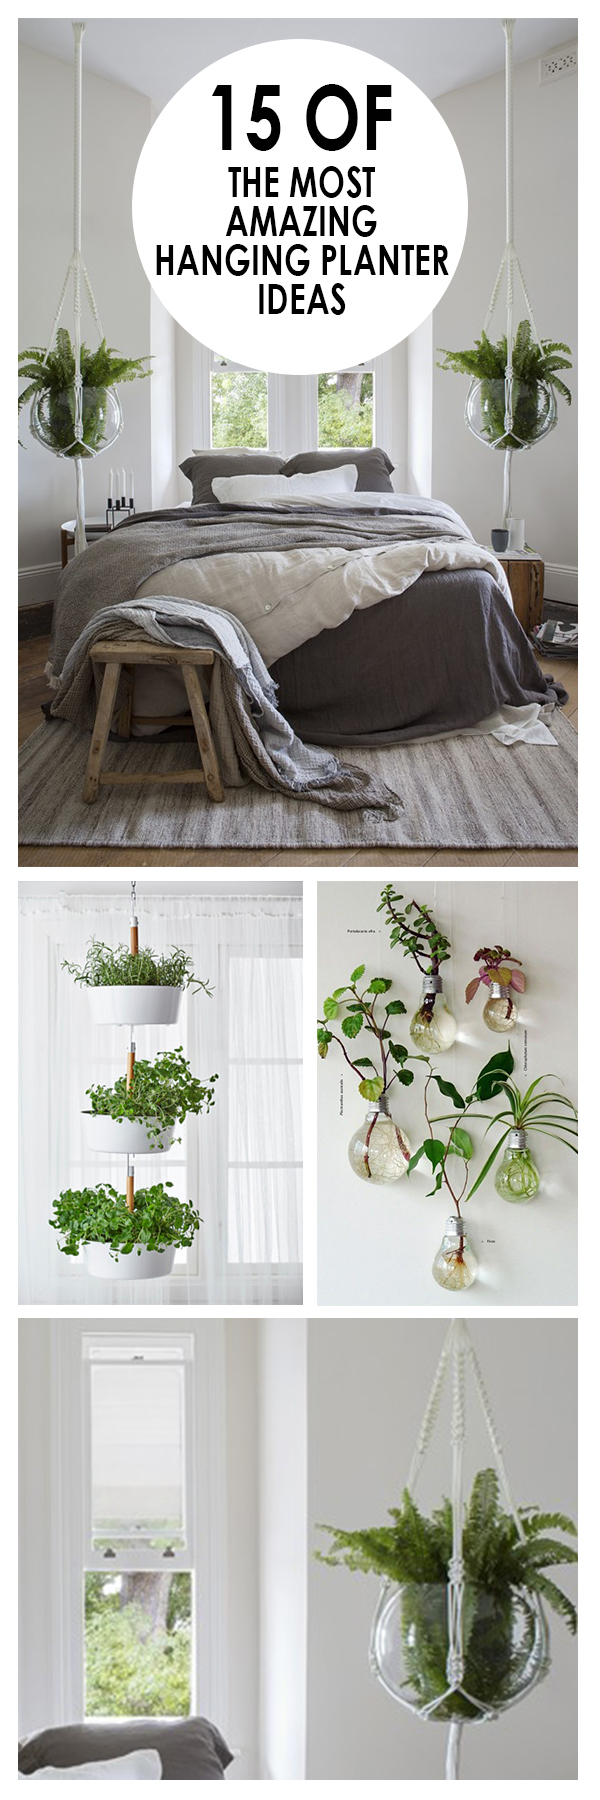 Hanging planters, garden planters, container gardening, popular pin, DIY container gardening, easy gardening.